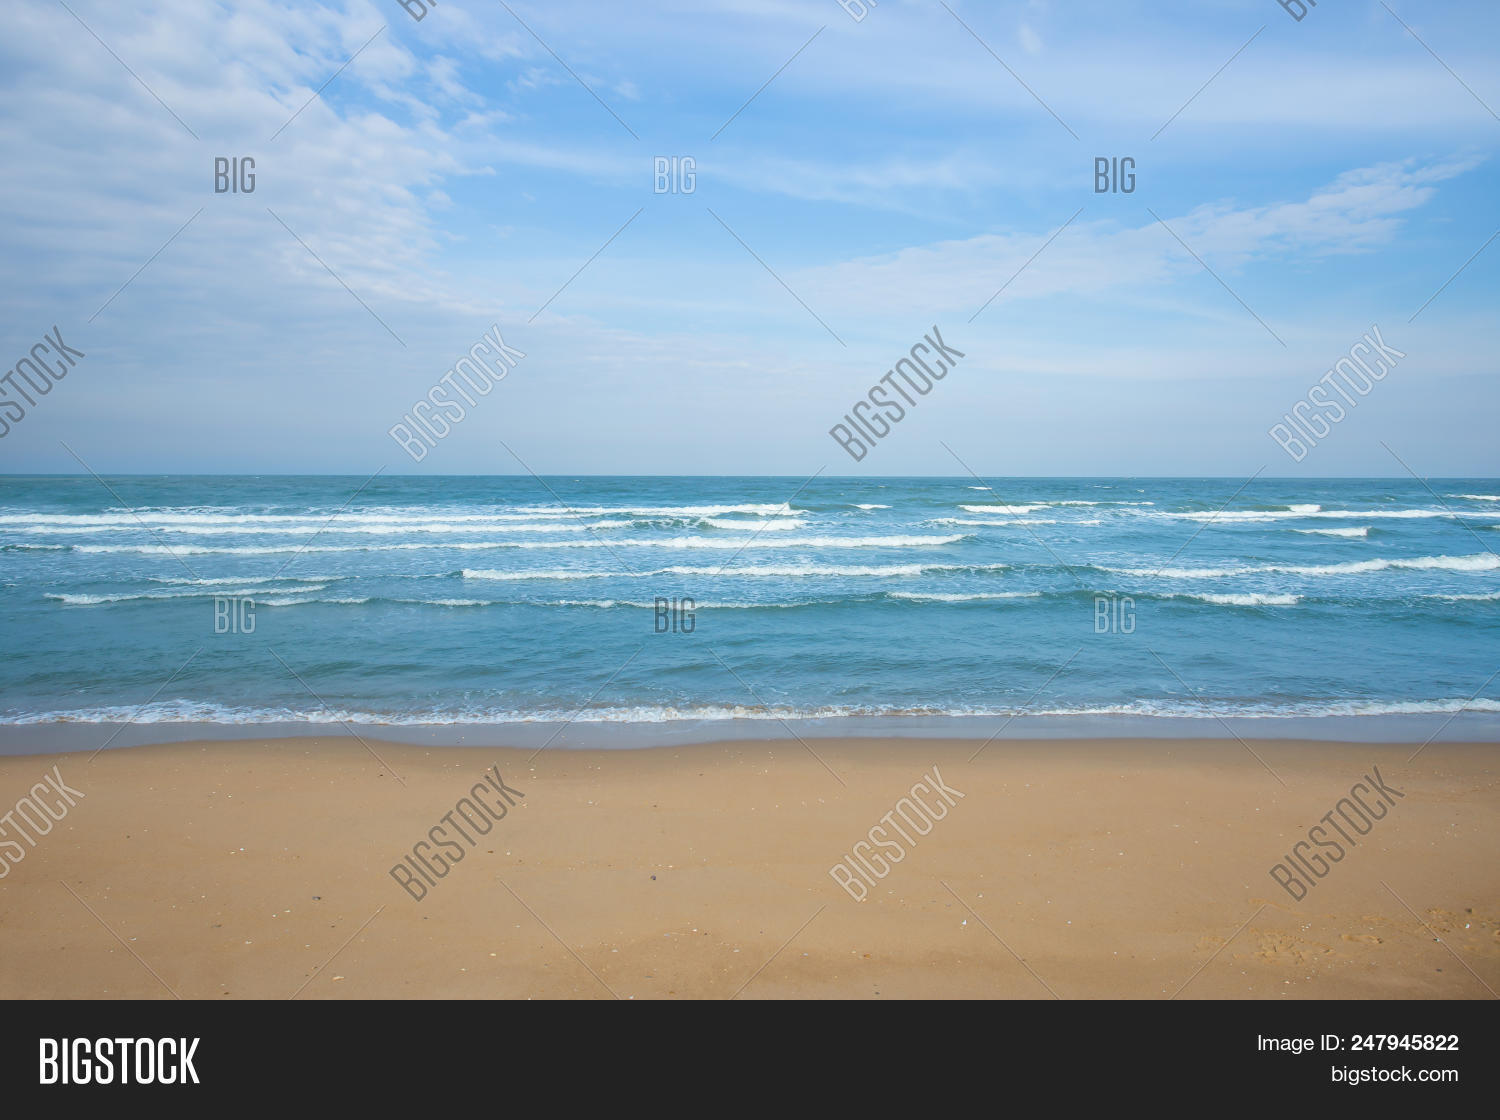 atlantic,background,bay,beach,beautiful,beauty,blue,clear,cloud,coast,day,dominican,hot,landscape,natural,nature,ocean,outdoor,paradise,peace,relax,relaxation,resort,sand,scenic,sea,seascape,shore,sky,splash,summer,sun,sunlight,sunny,sunshine,surf,thailand,travel,tropic,tropical,vacation,water,wave,white